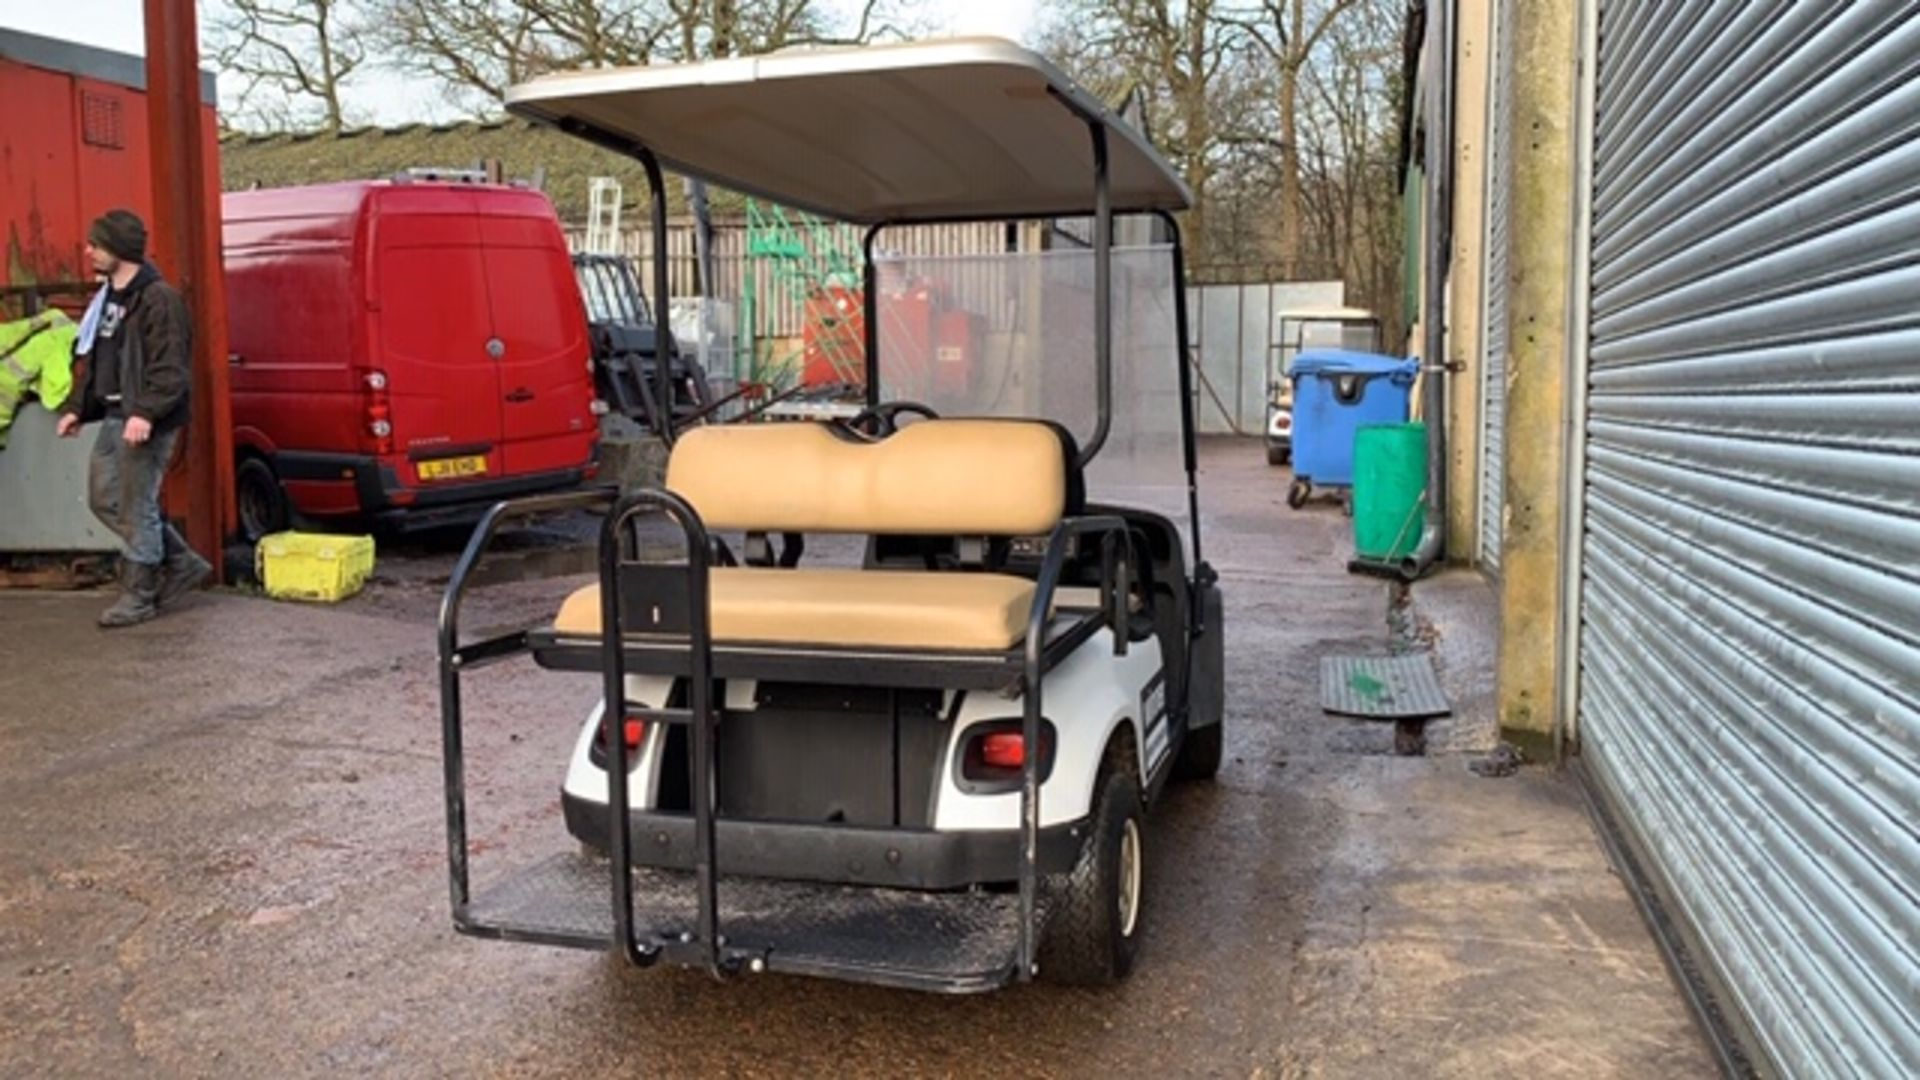 Lot 9 - CUSHMAN EZGO SHUTTLE 4 PETROL ENGINED 4 SEATER GOLF / EVENTS BUGGY. YEAR 2017 BUILD. 108 REC HRS.